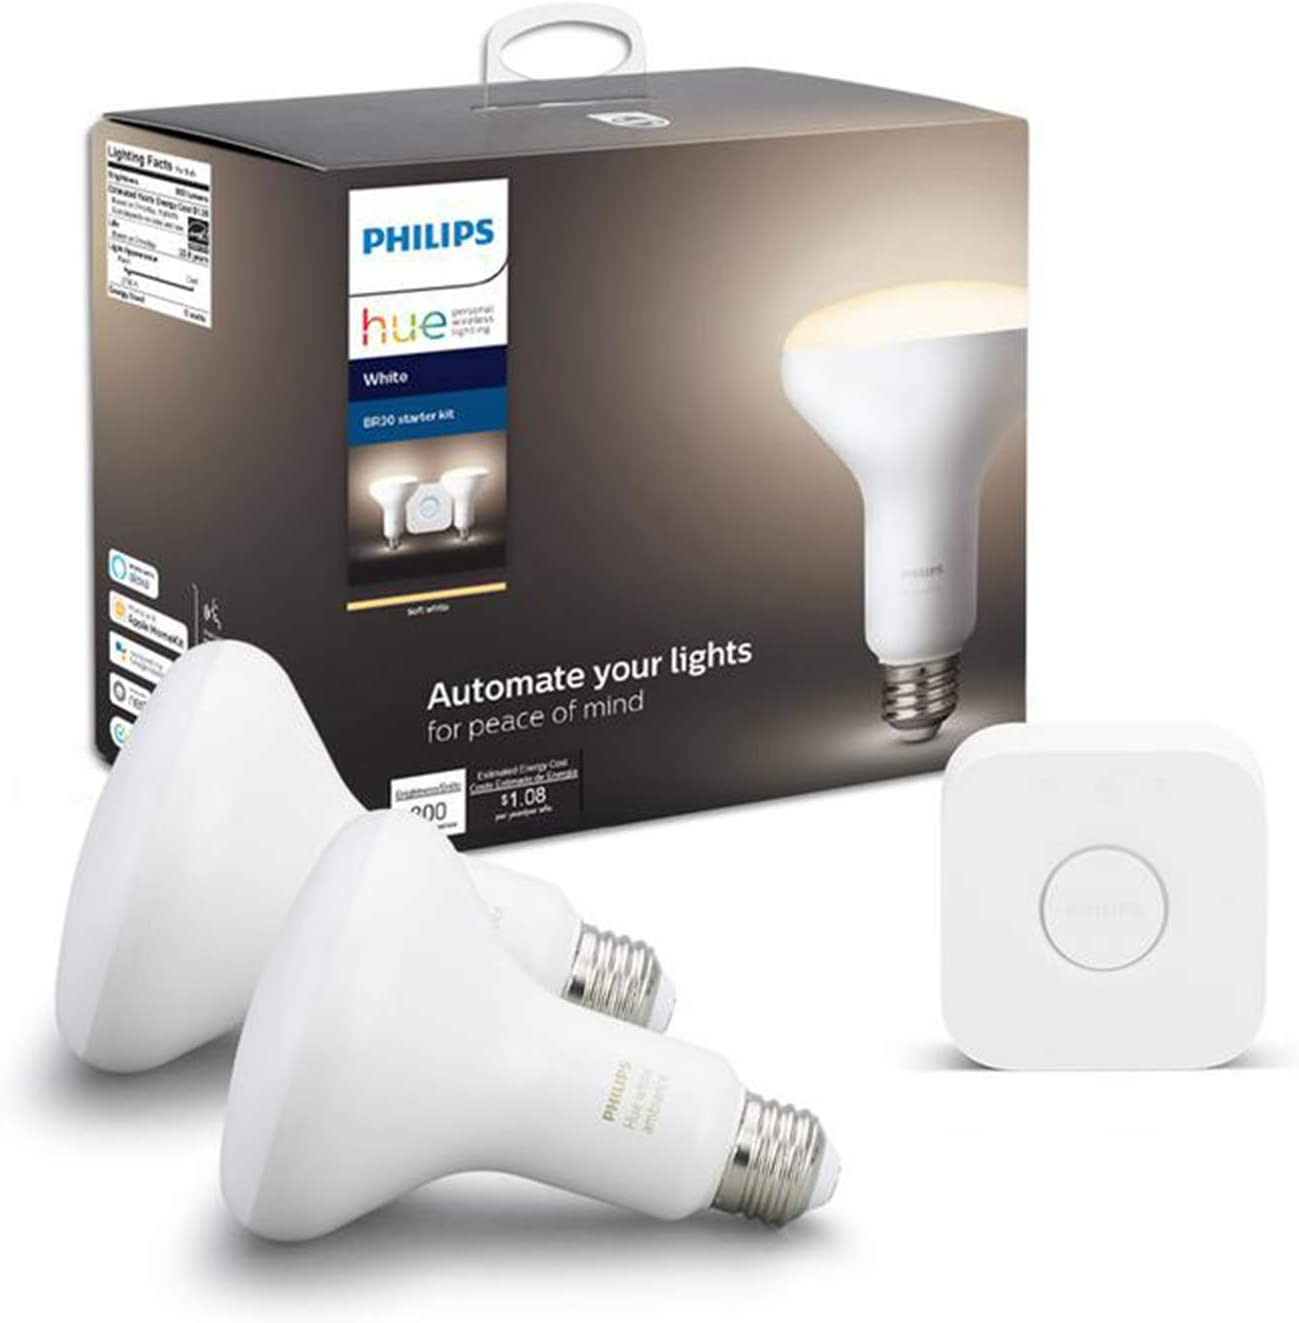 Philips Hue Dimmable White BR30 Starter Kit (Dimmable Only, Compatible with Alexa, Apple HomeKit, Google Home)